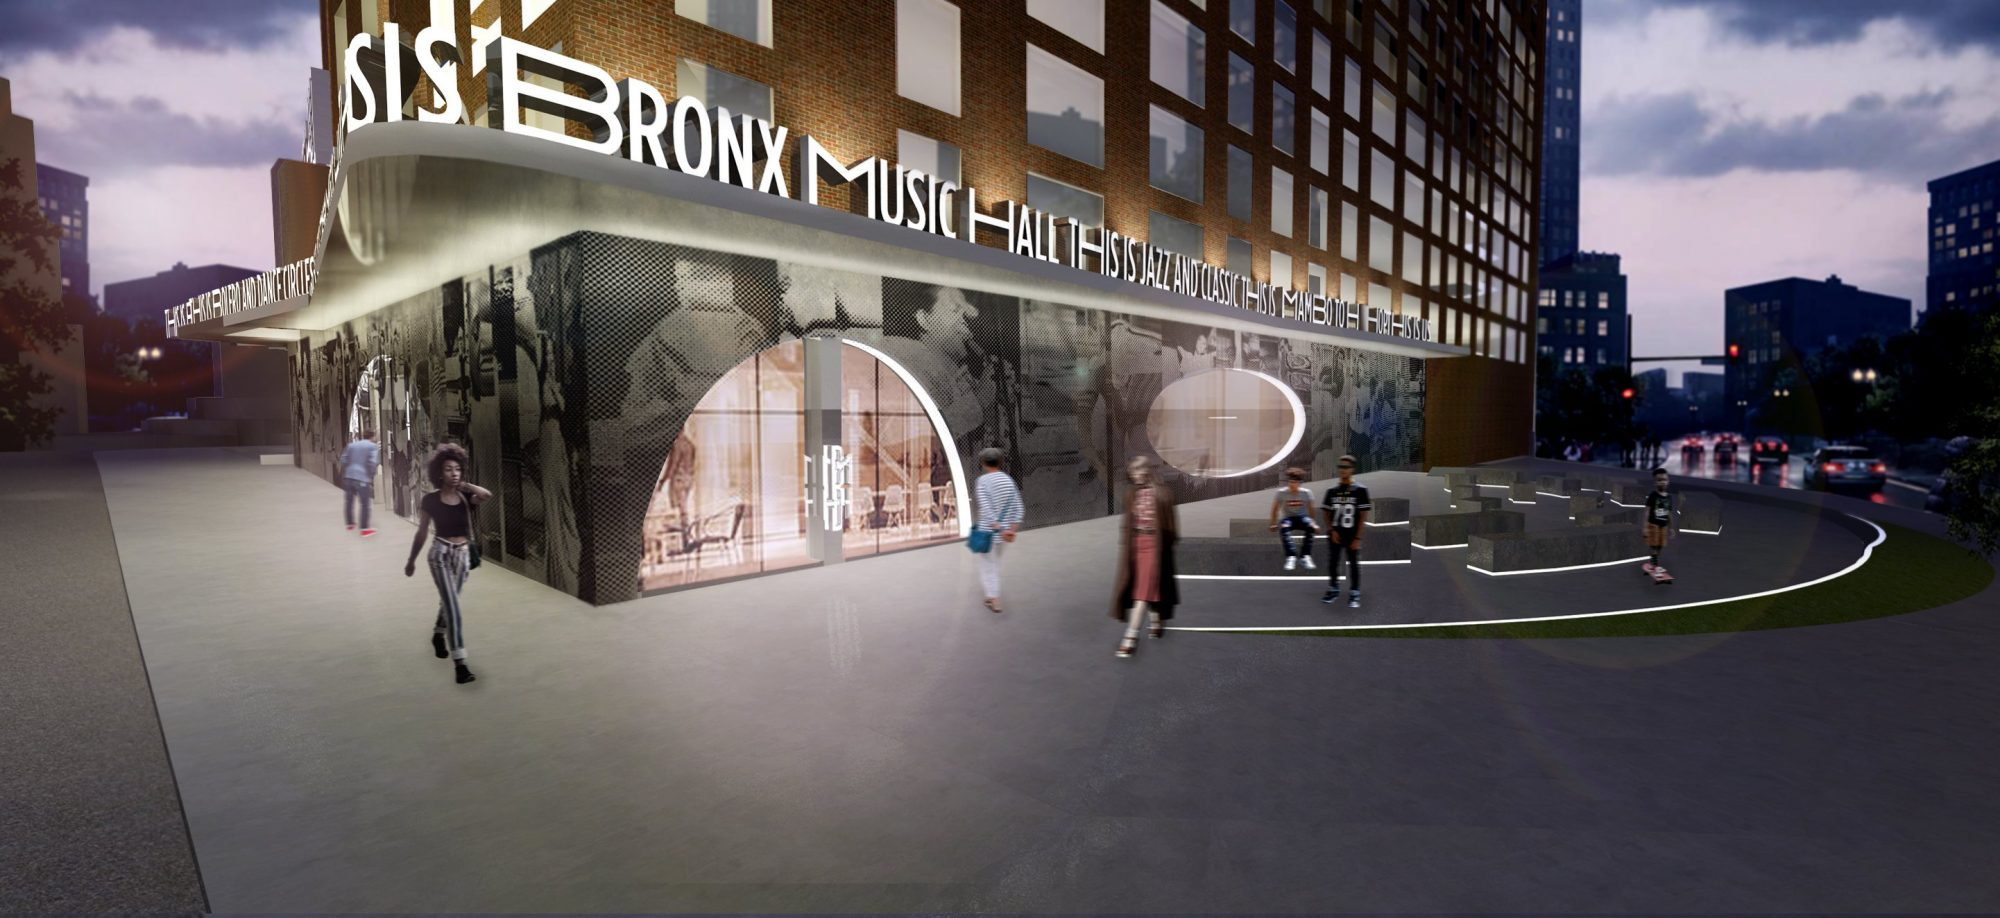 bx-music-hall-exterior_credit-wxy-and-local-projects